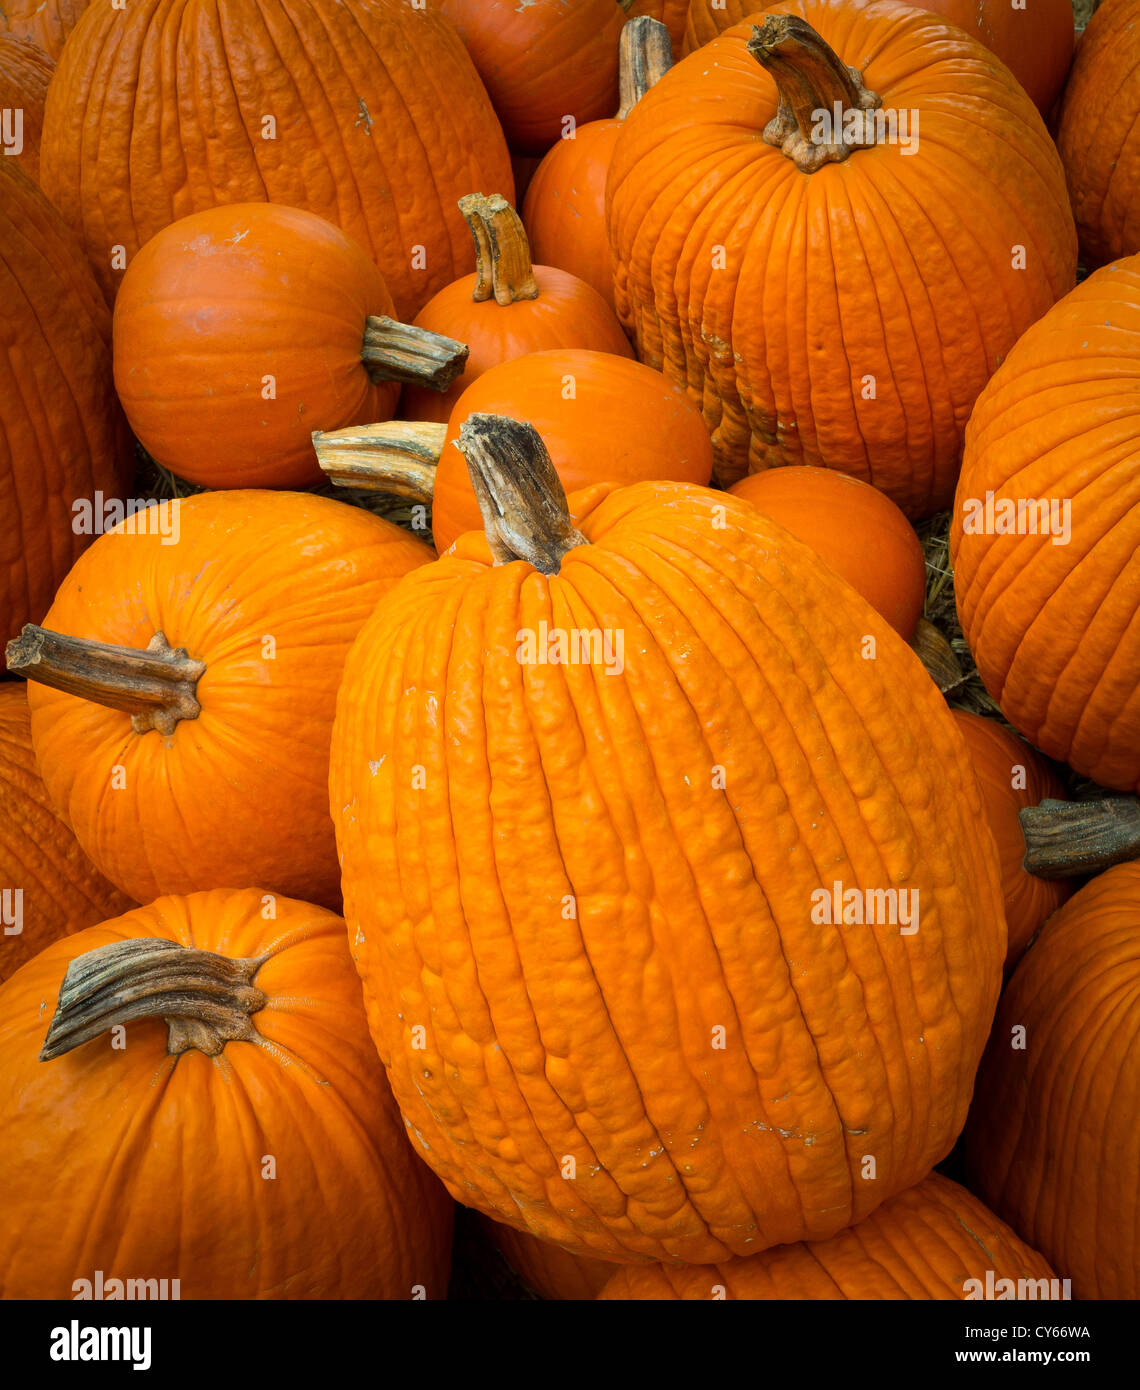 Pumpkins on a pumpkin patch at the Dallas Arboretum - Stock Image